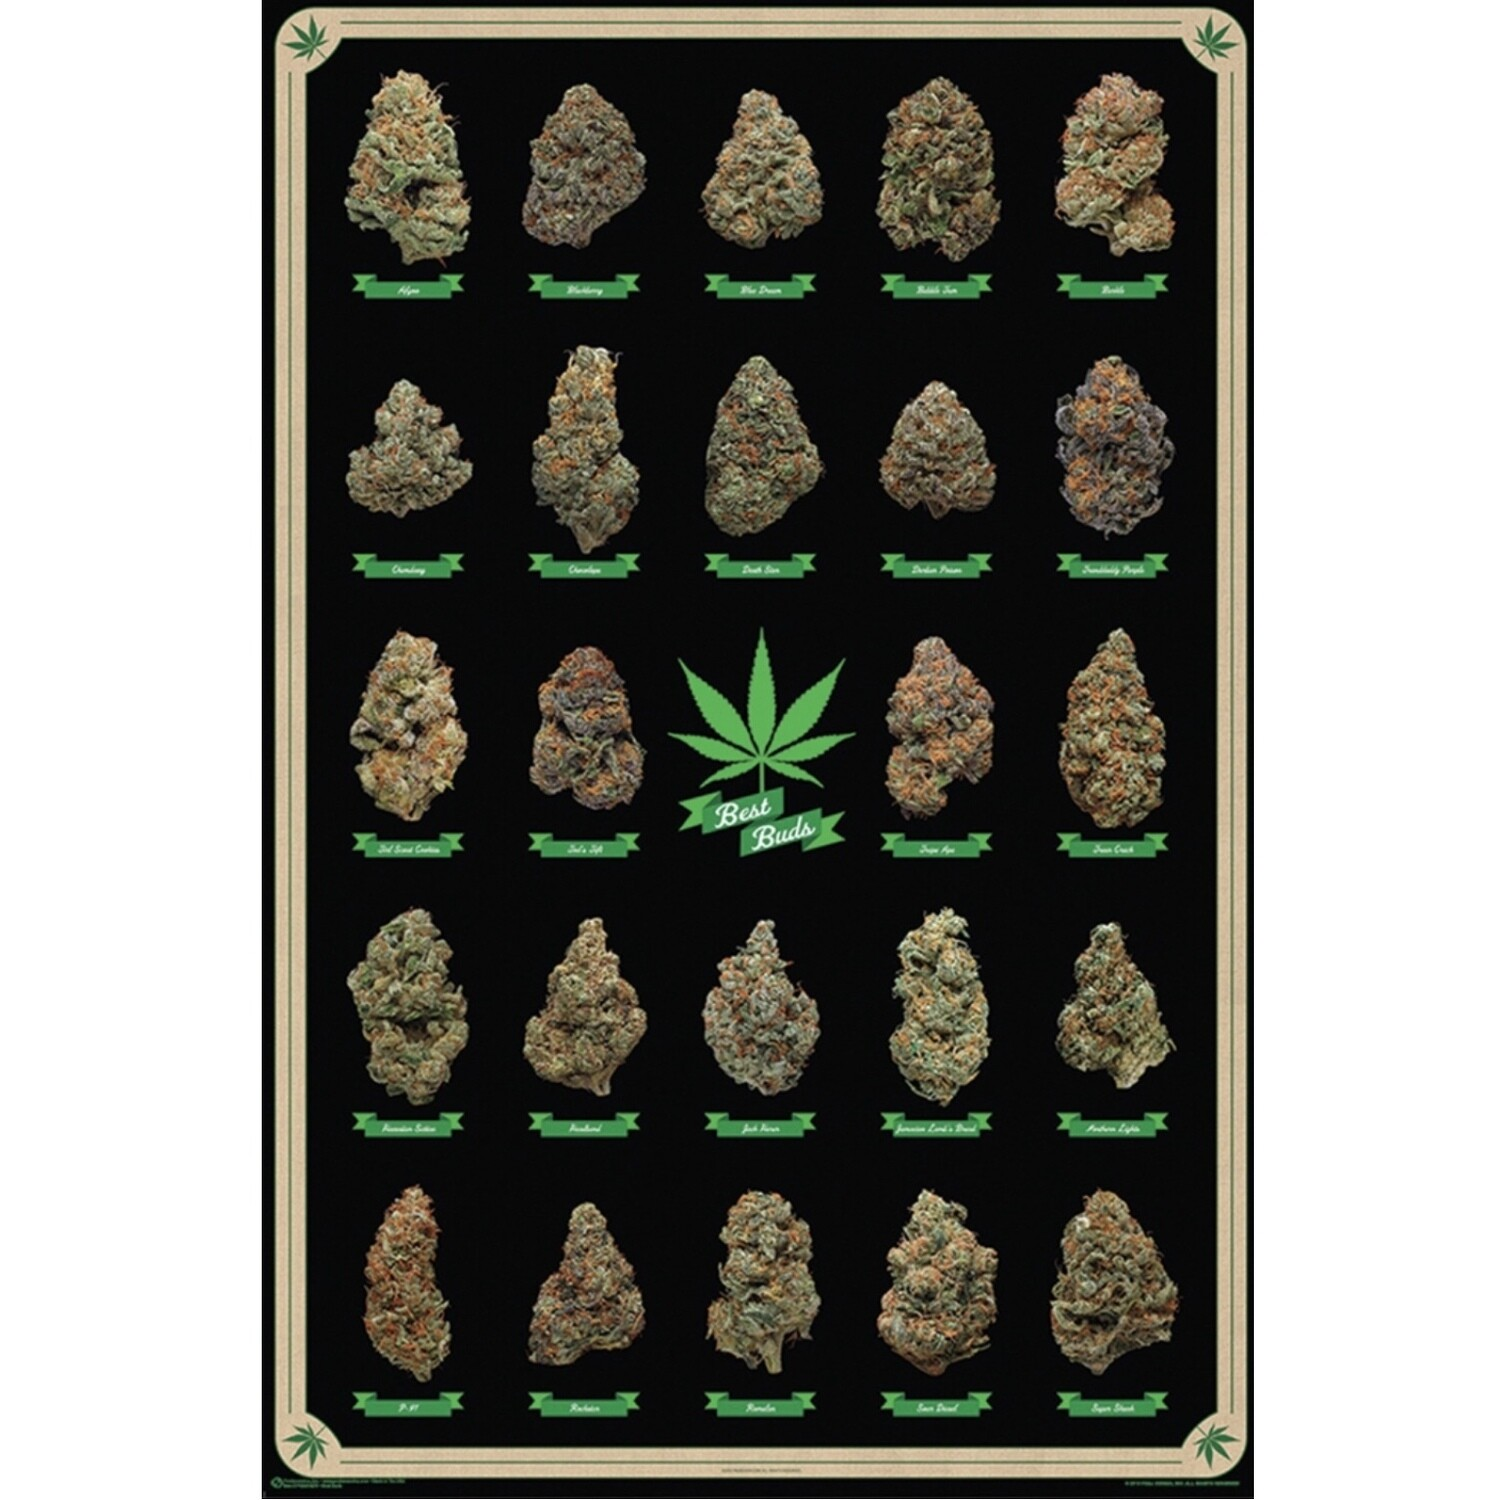 BEST BUDS POSTER